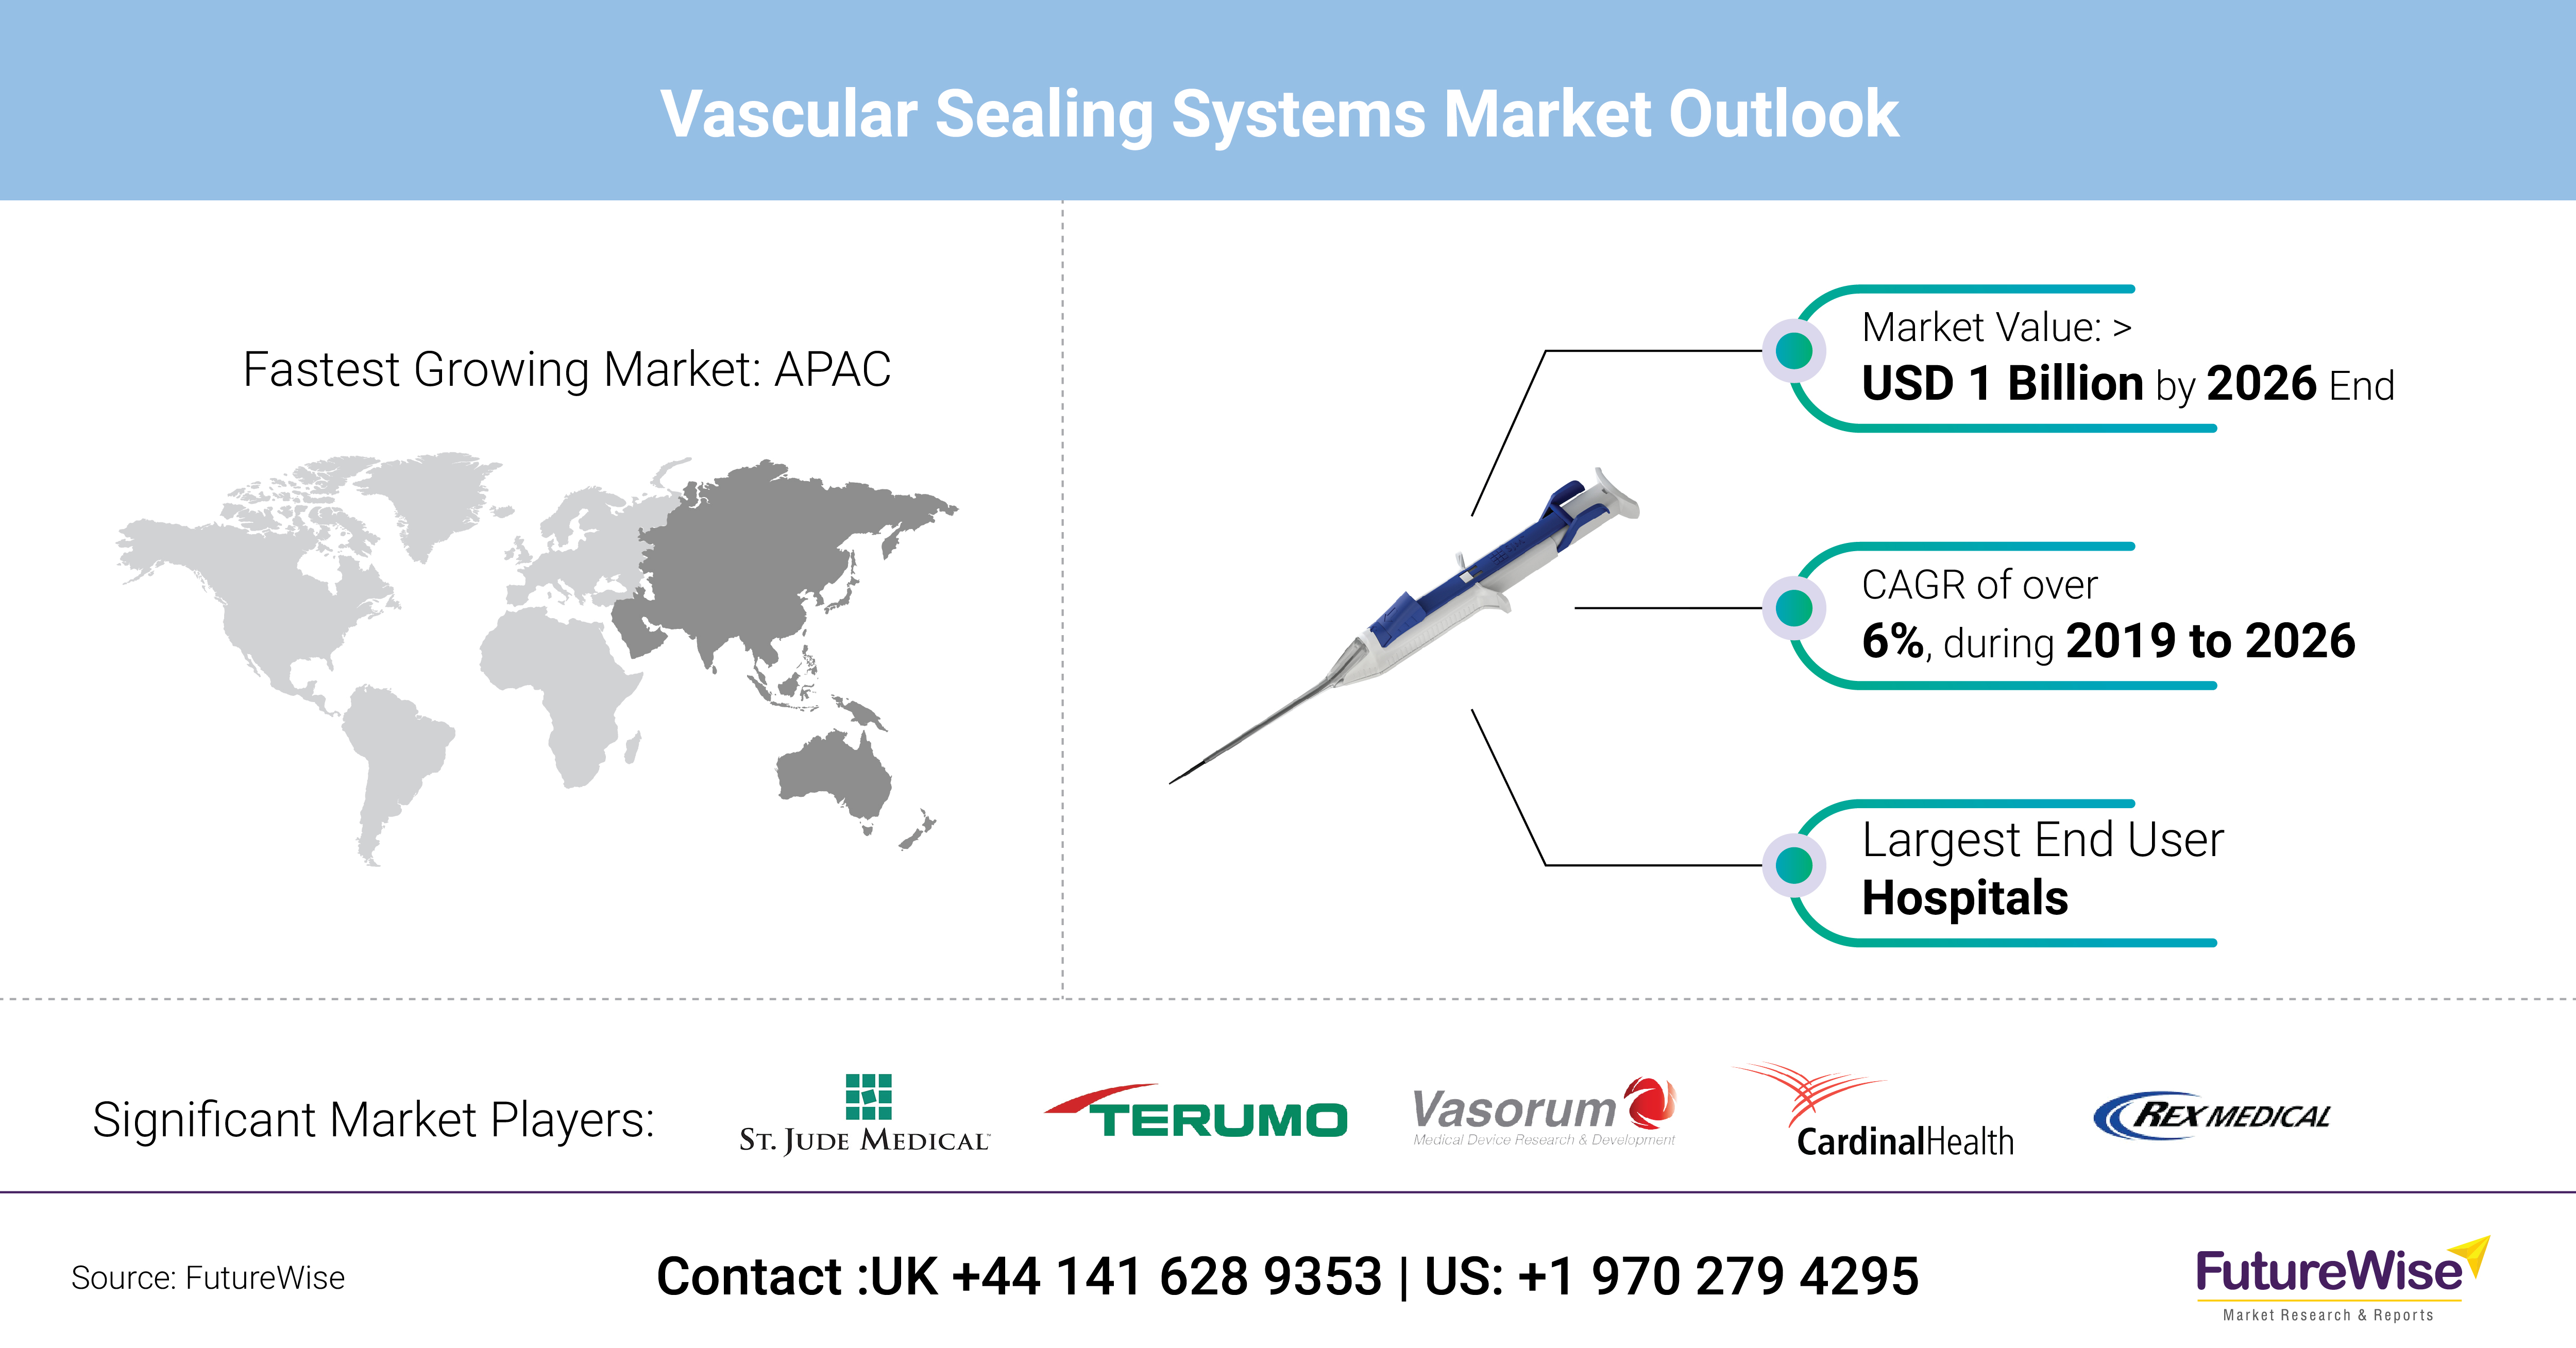 Vascular Sealing Systems Market Share, Trends and Size